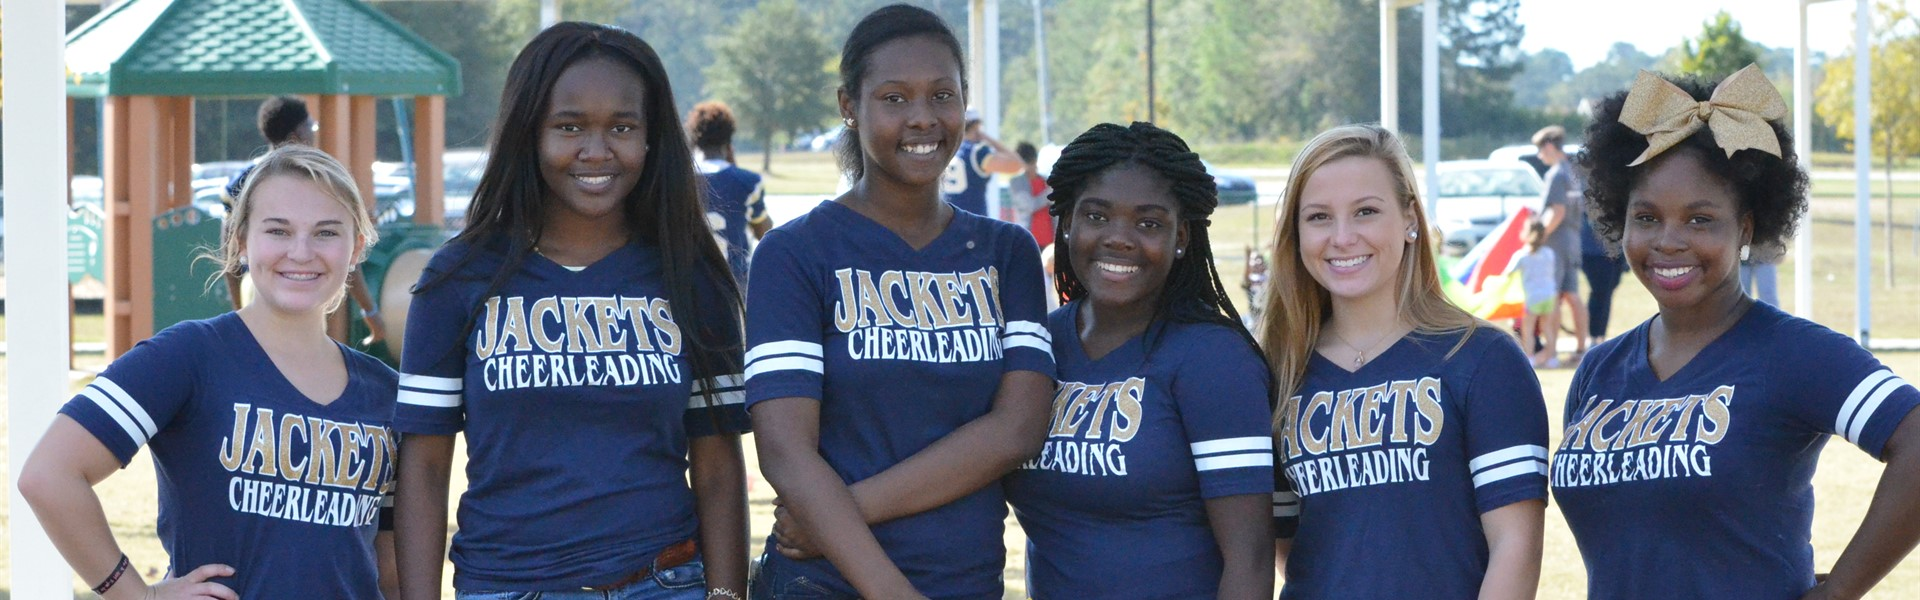 TCCHS cheerleaders at Healthy Habits Day at Hand in Hand.